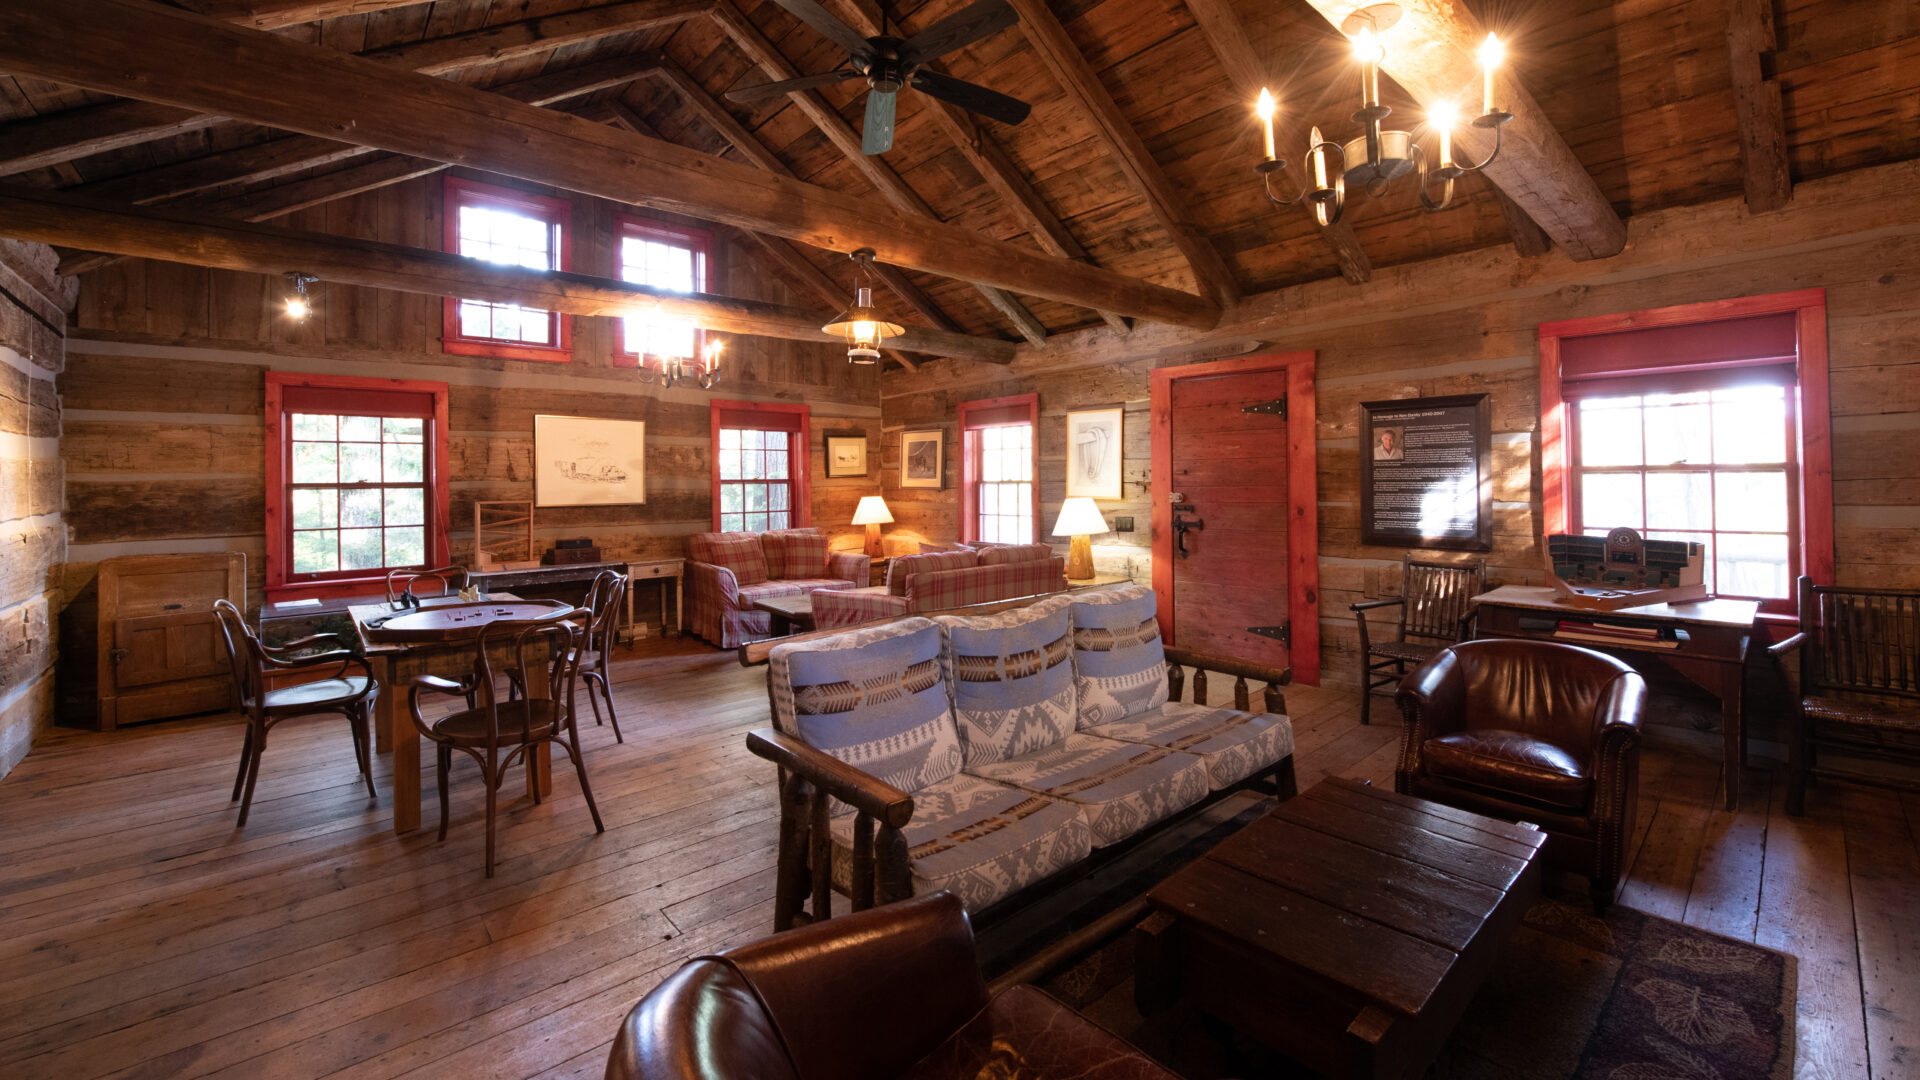 Interior of large log cabin with two seating areas and an antique wood dining table and chairs